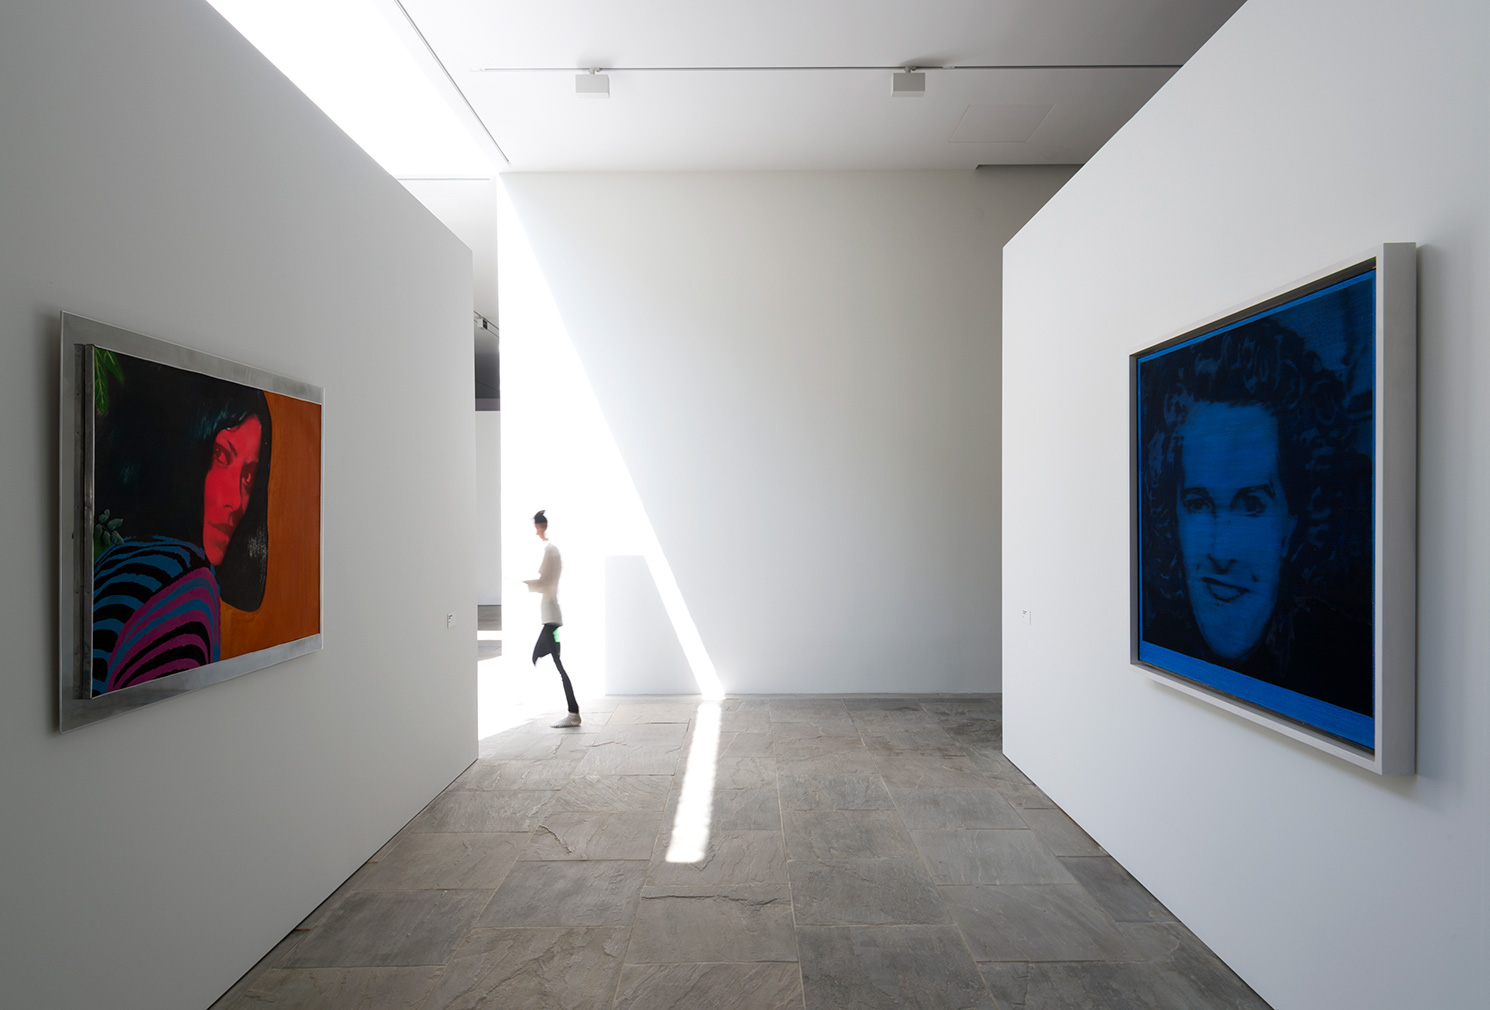 Left to right: Martial Raysse, 'Untitled', 1962. © Adagp, Paris 2018; Gerhard Richter, 'Evelyn (Blau)', 1964. © Gerhard Richter 2018. Photography: Marc Domage